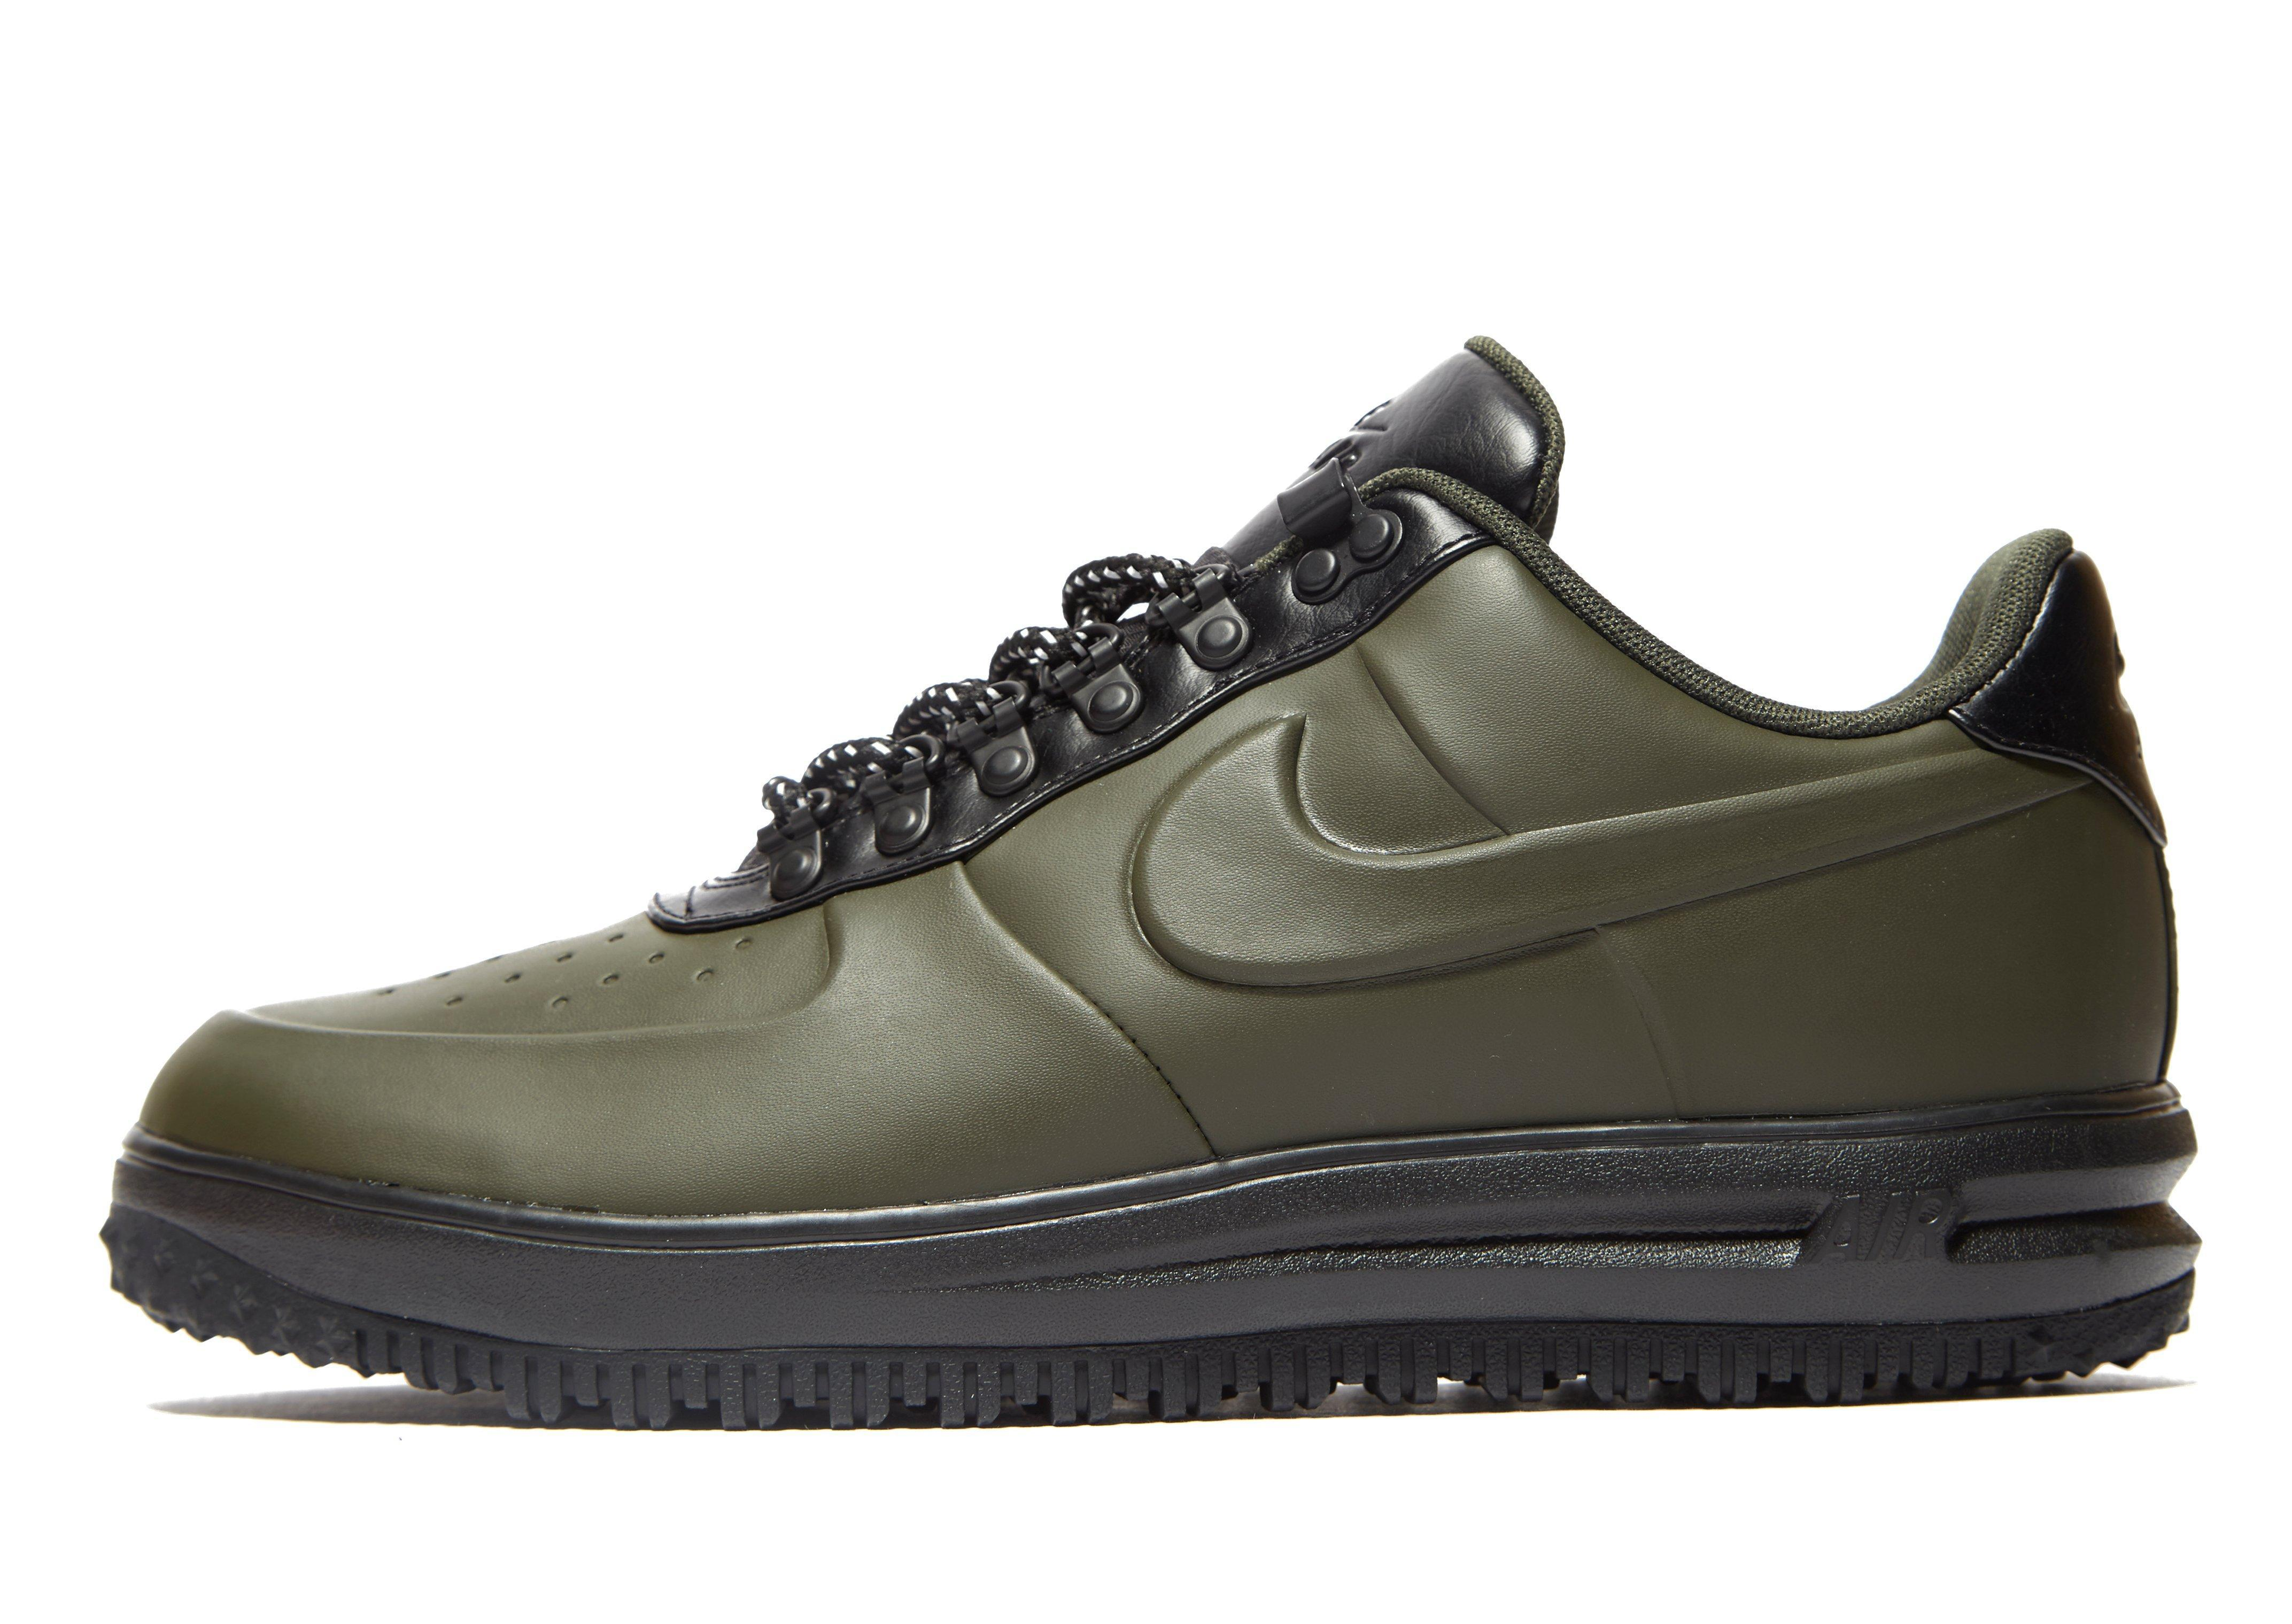 lyst nike lunar force 1 duckboot low in black for men. Black Bedroom Furniture Sets. Home Design Ideas